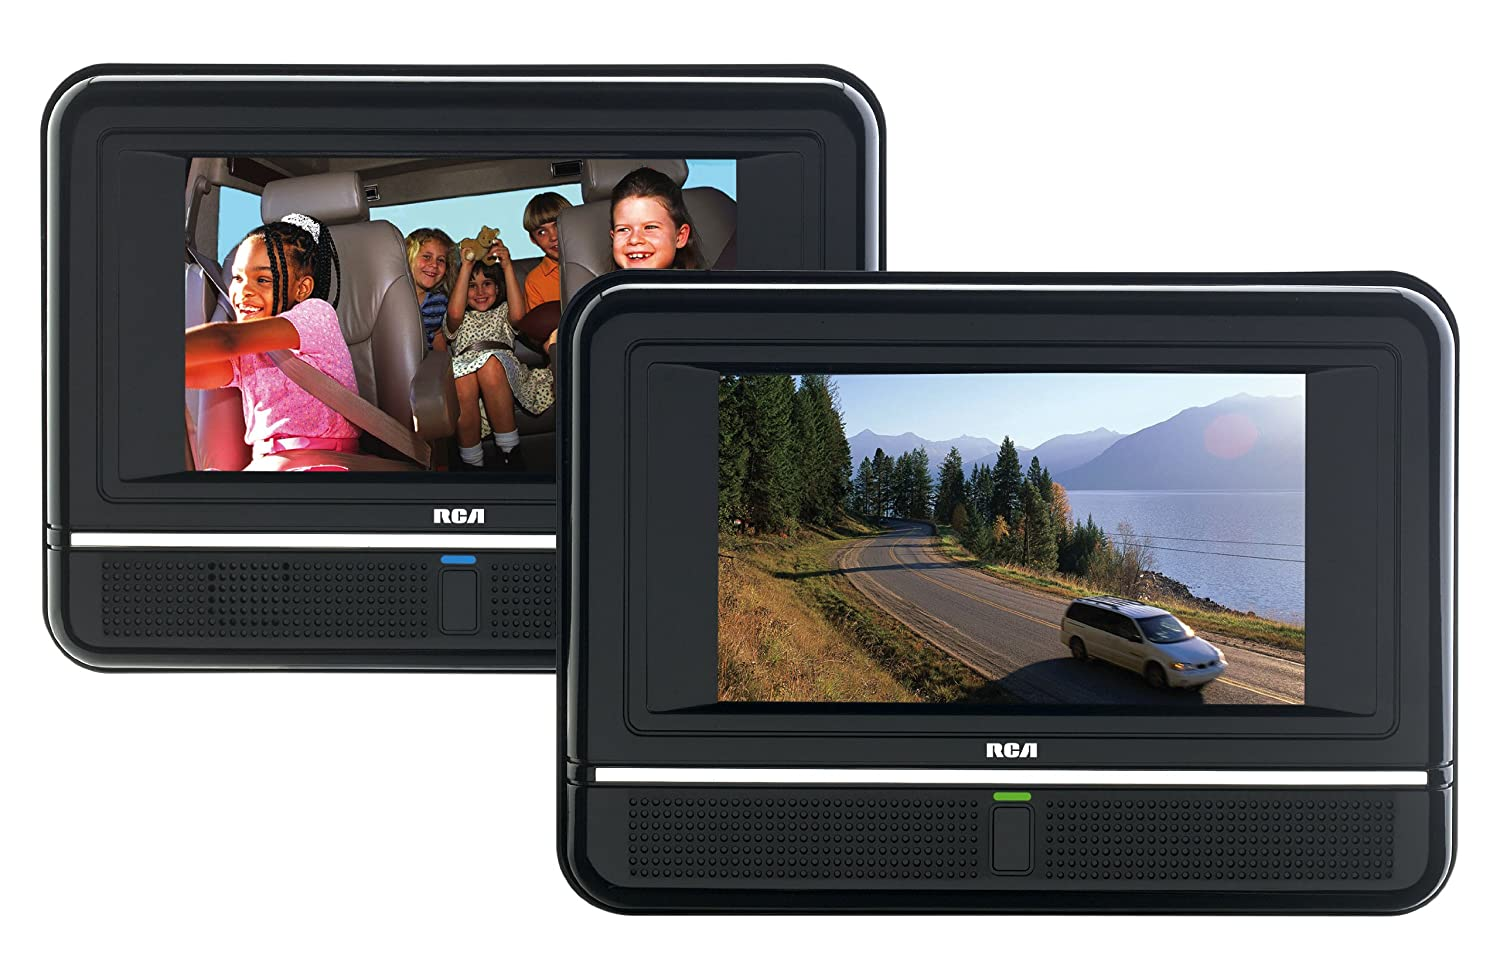 amazoncom rca drc6272 7 inch twin mobile dvd players play two different dvds electronics